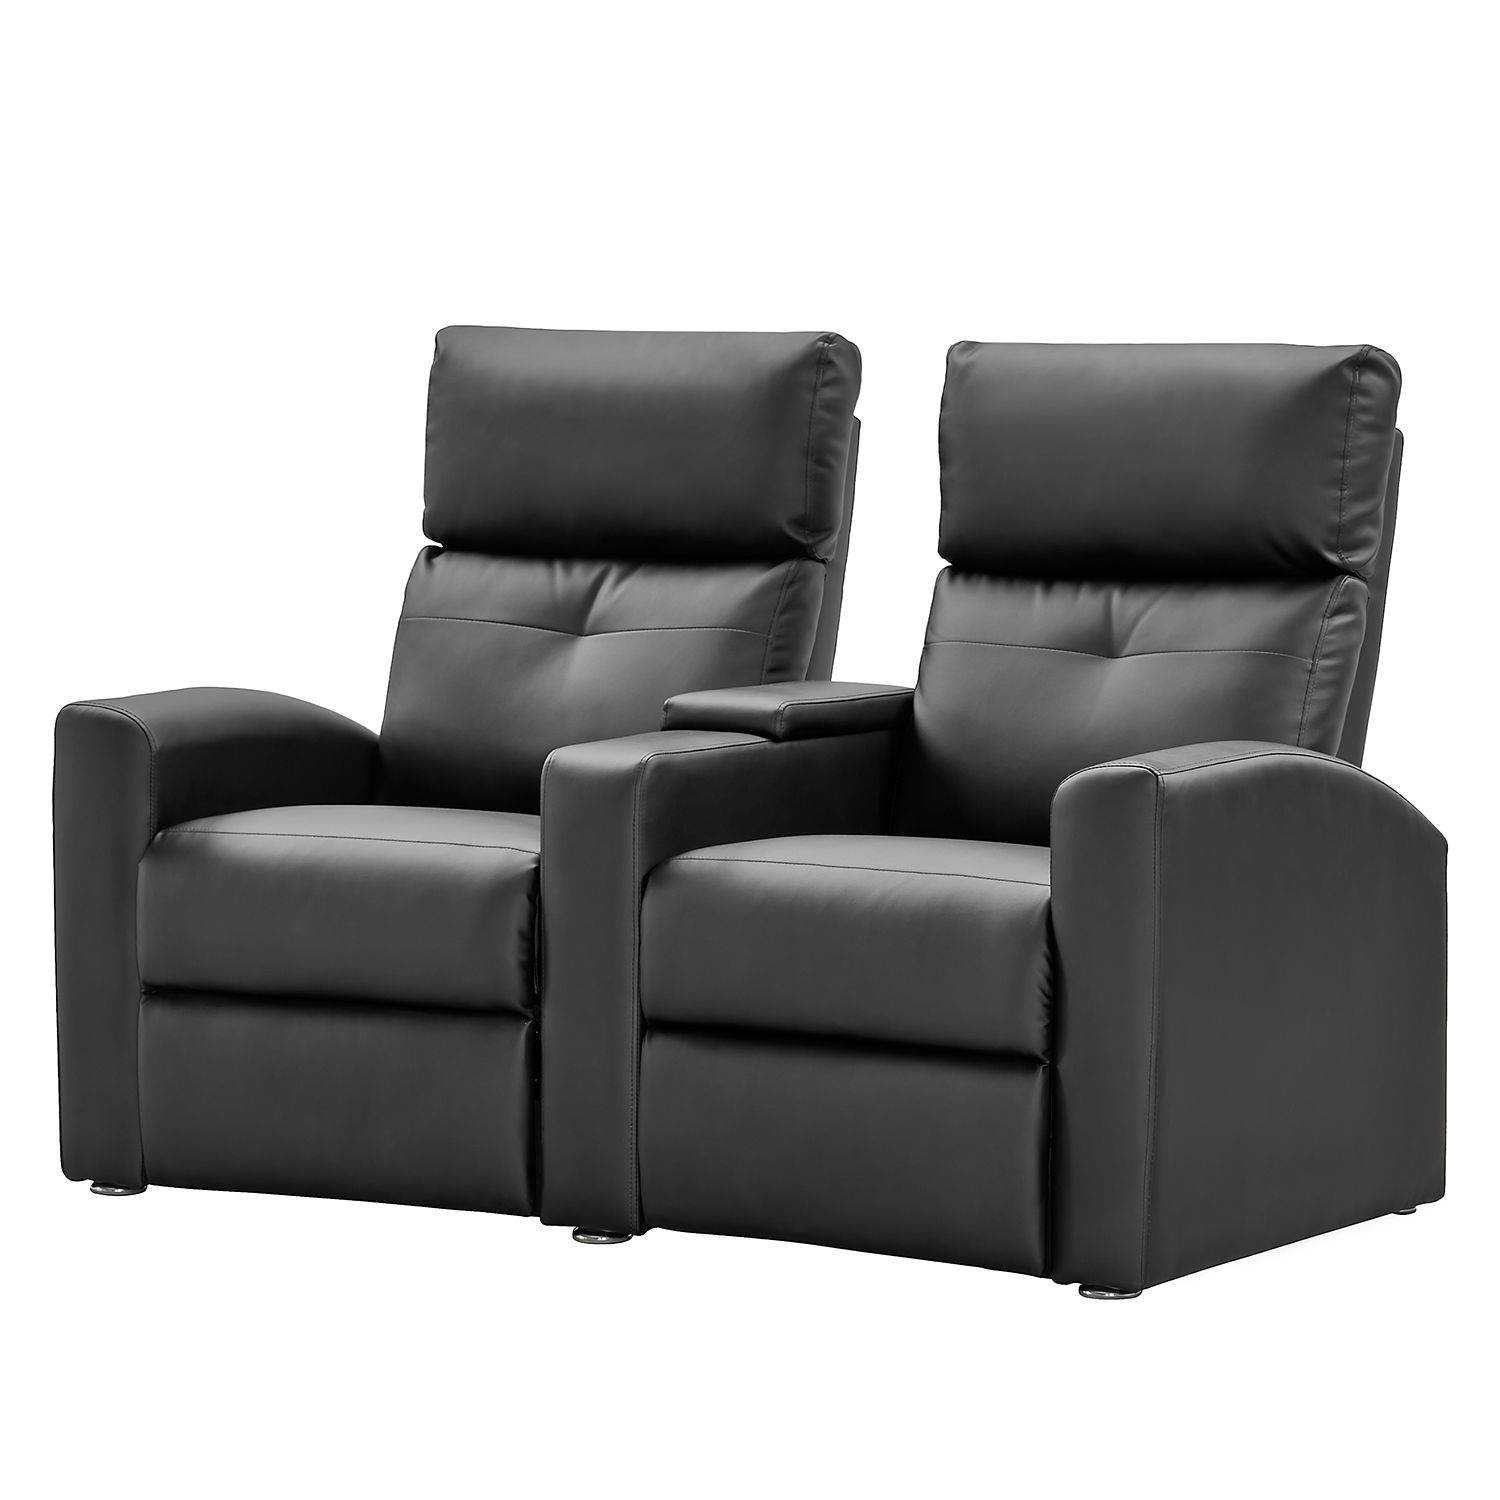 kunstleder couch schwarz 3 sitzer sofa schwarz kunstleder einzelsofas 2er 2 sitzer sofa. Black Bedroom Furniture Sets. Home Design Ideas